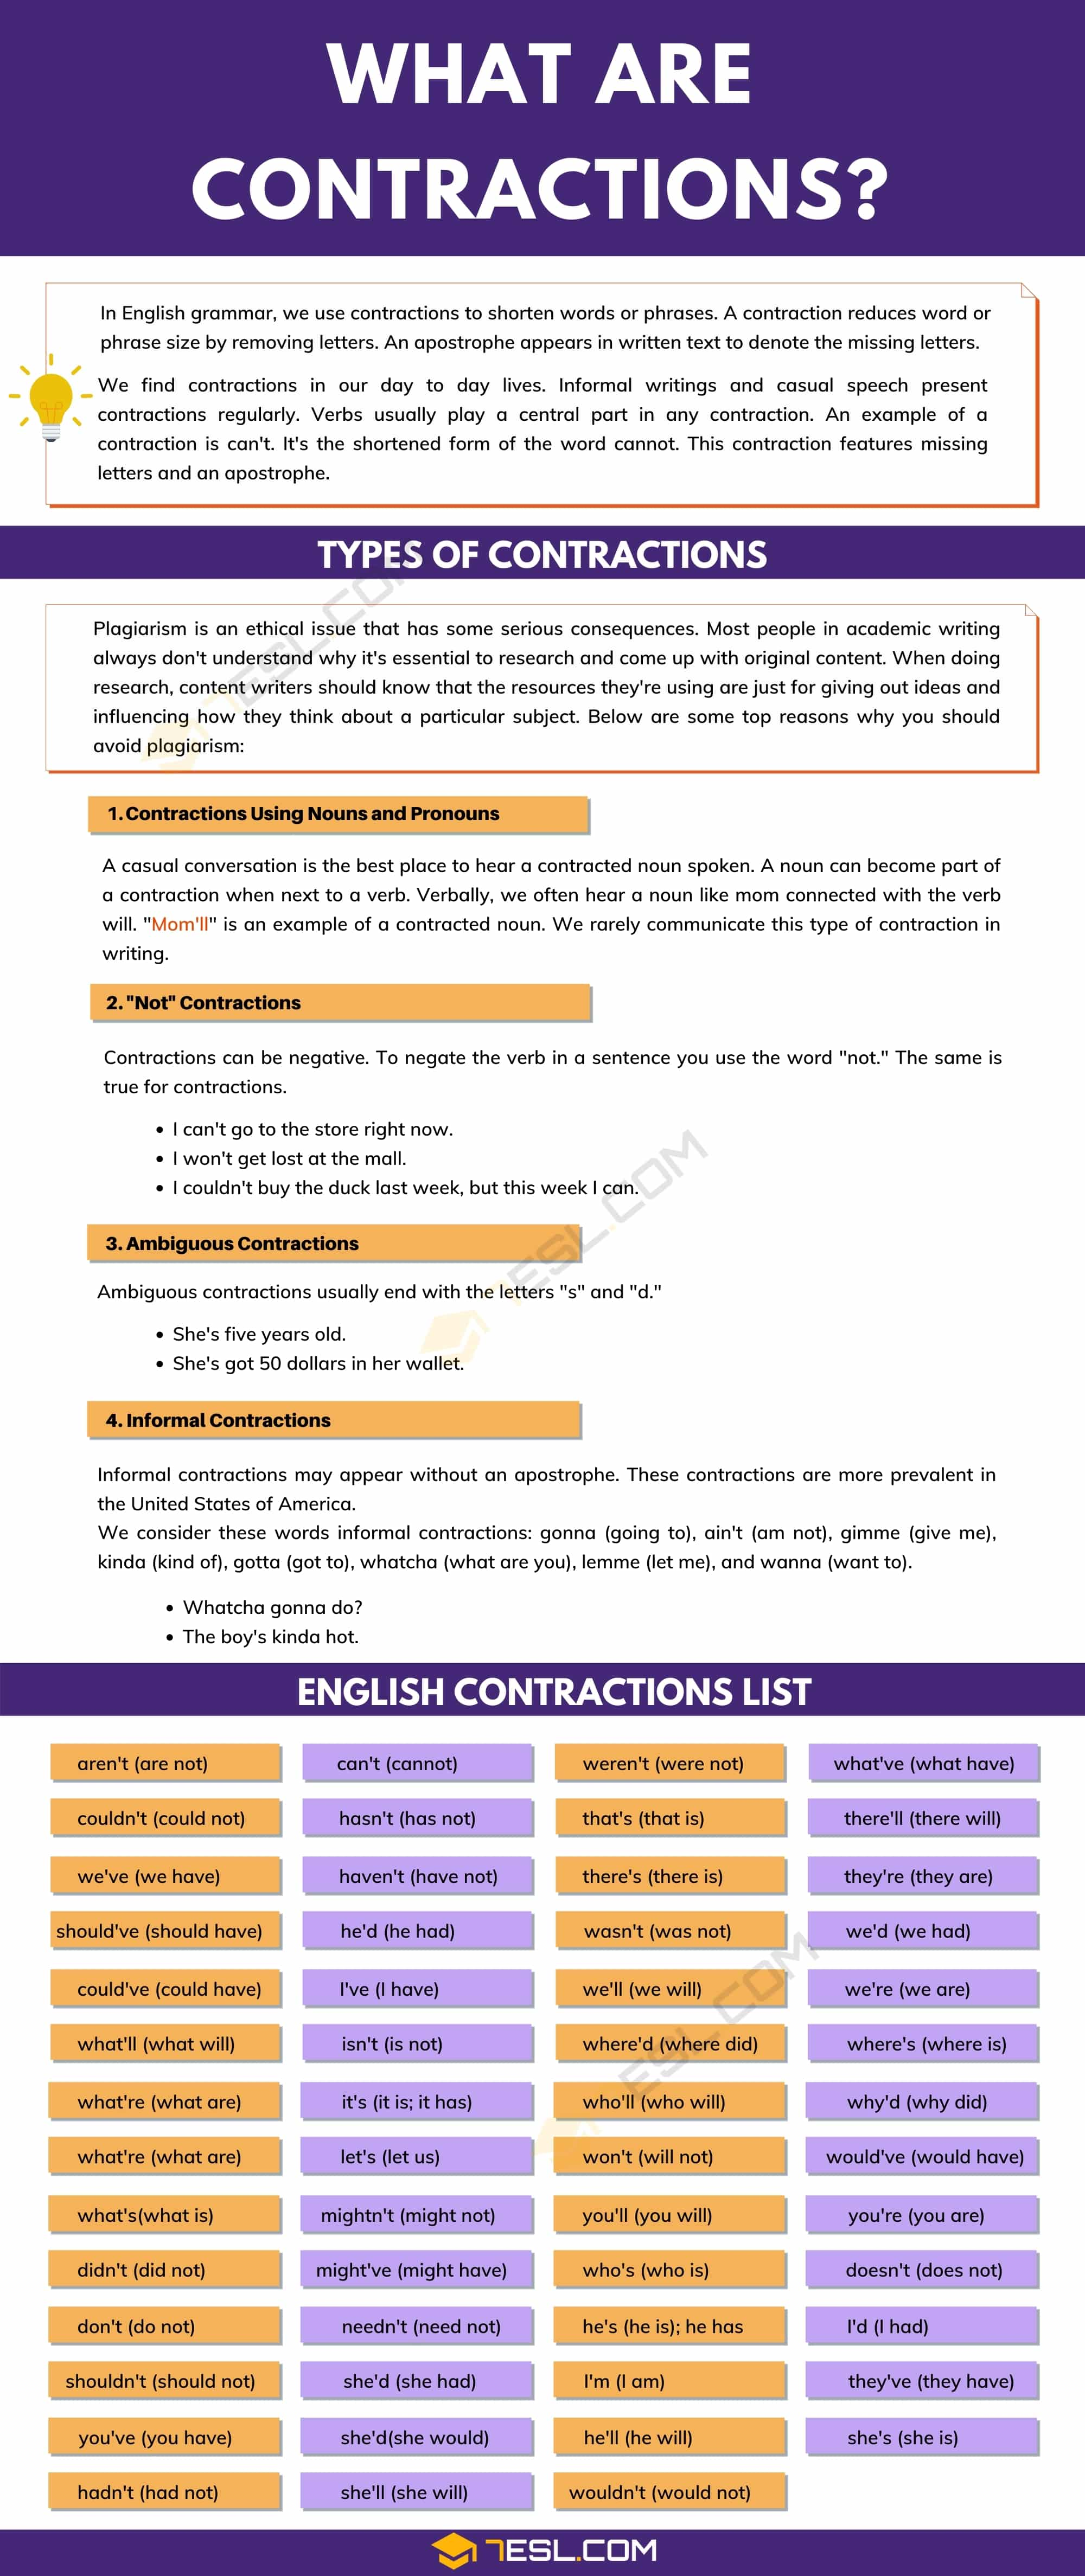 What Is A Contraction? Types & Useful List of Contractions in English Grammar